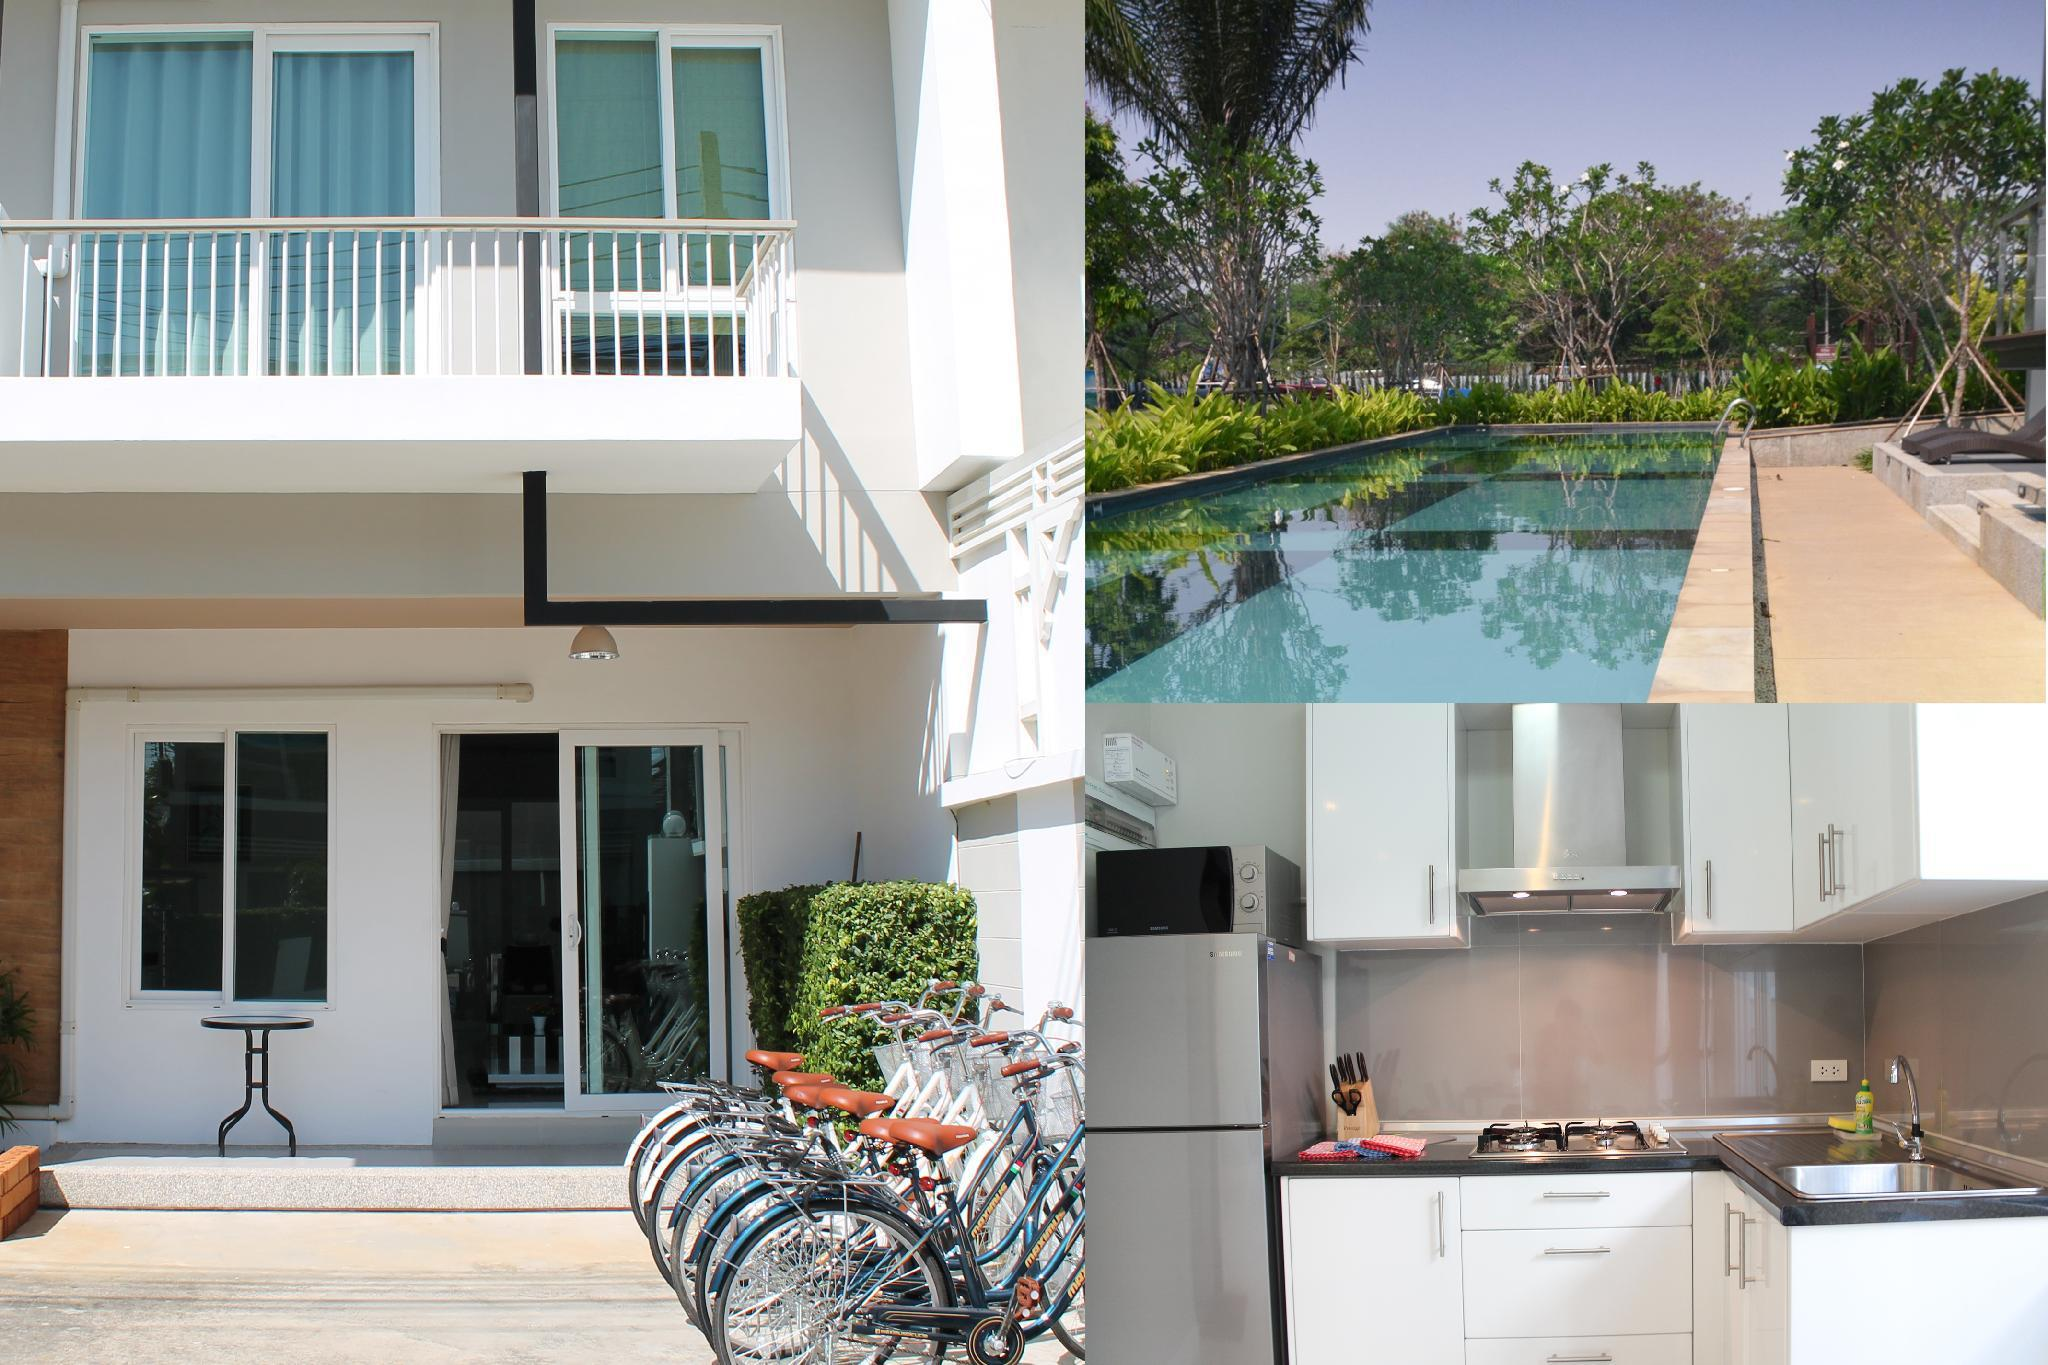 KK192 Lovely 3 bedrm townhouse with free bicycles KK192 Lovely 3 bedrm townhouse with free bicycles